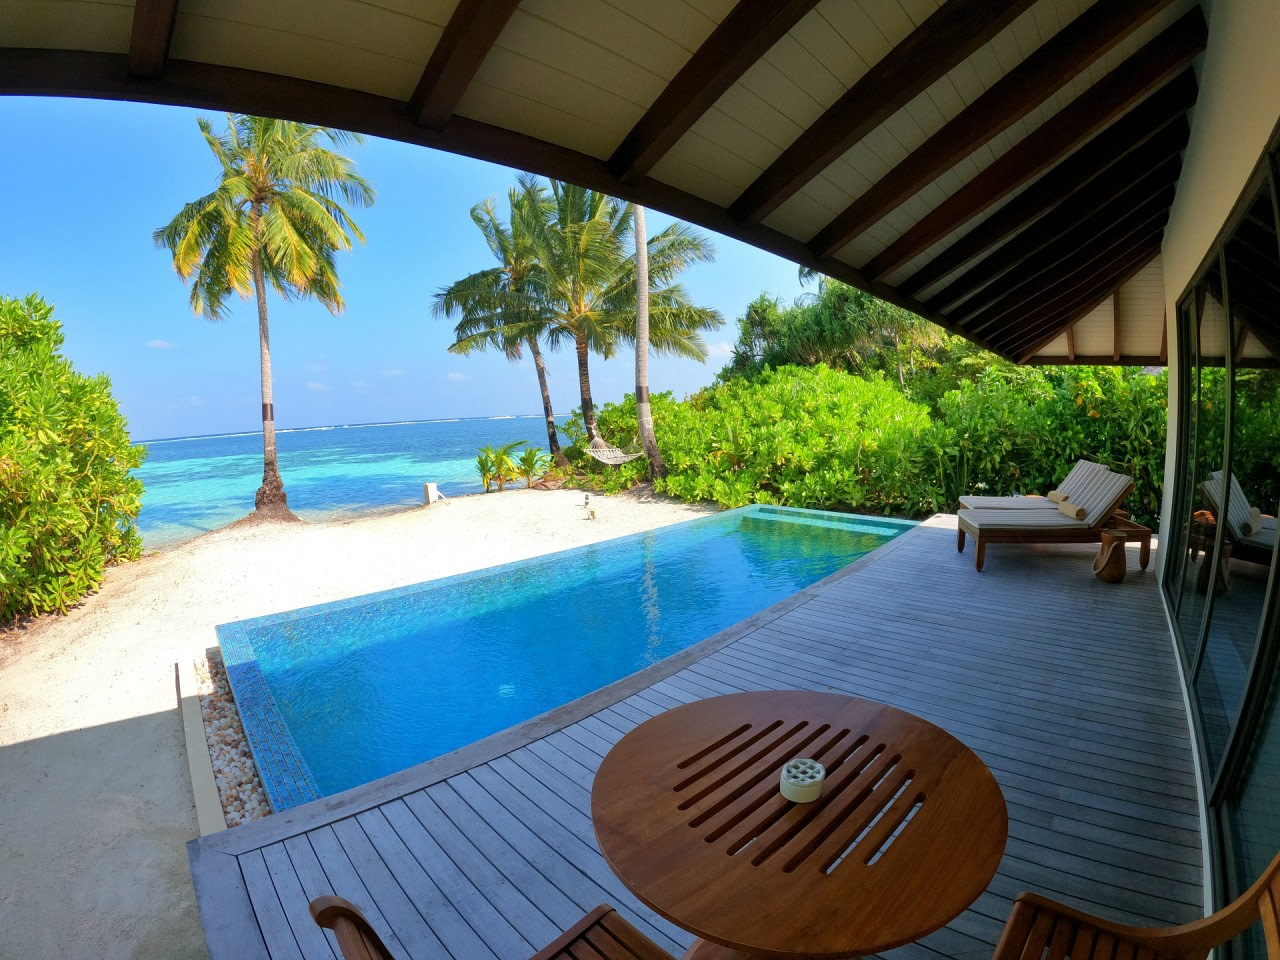 The_Residence_Maldives_Pool